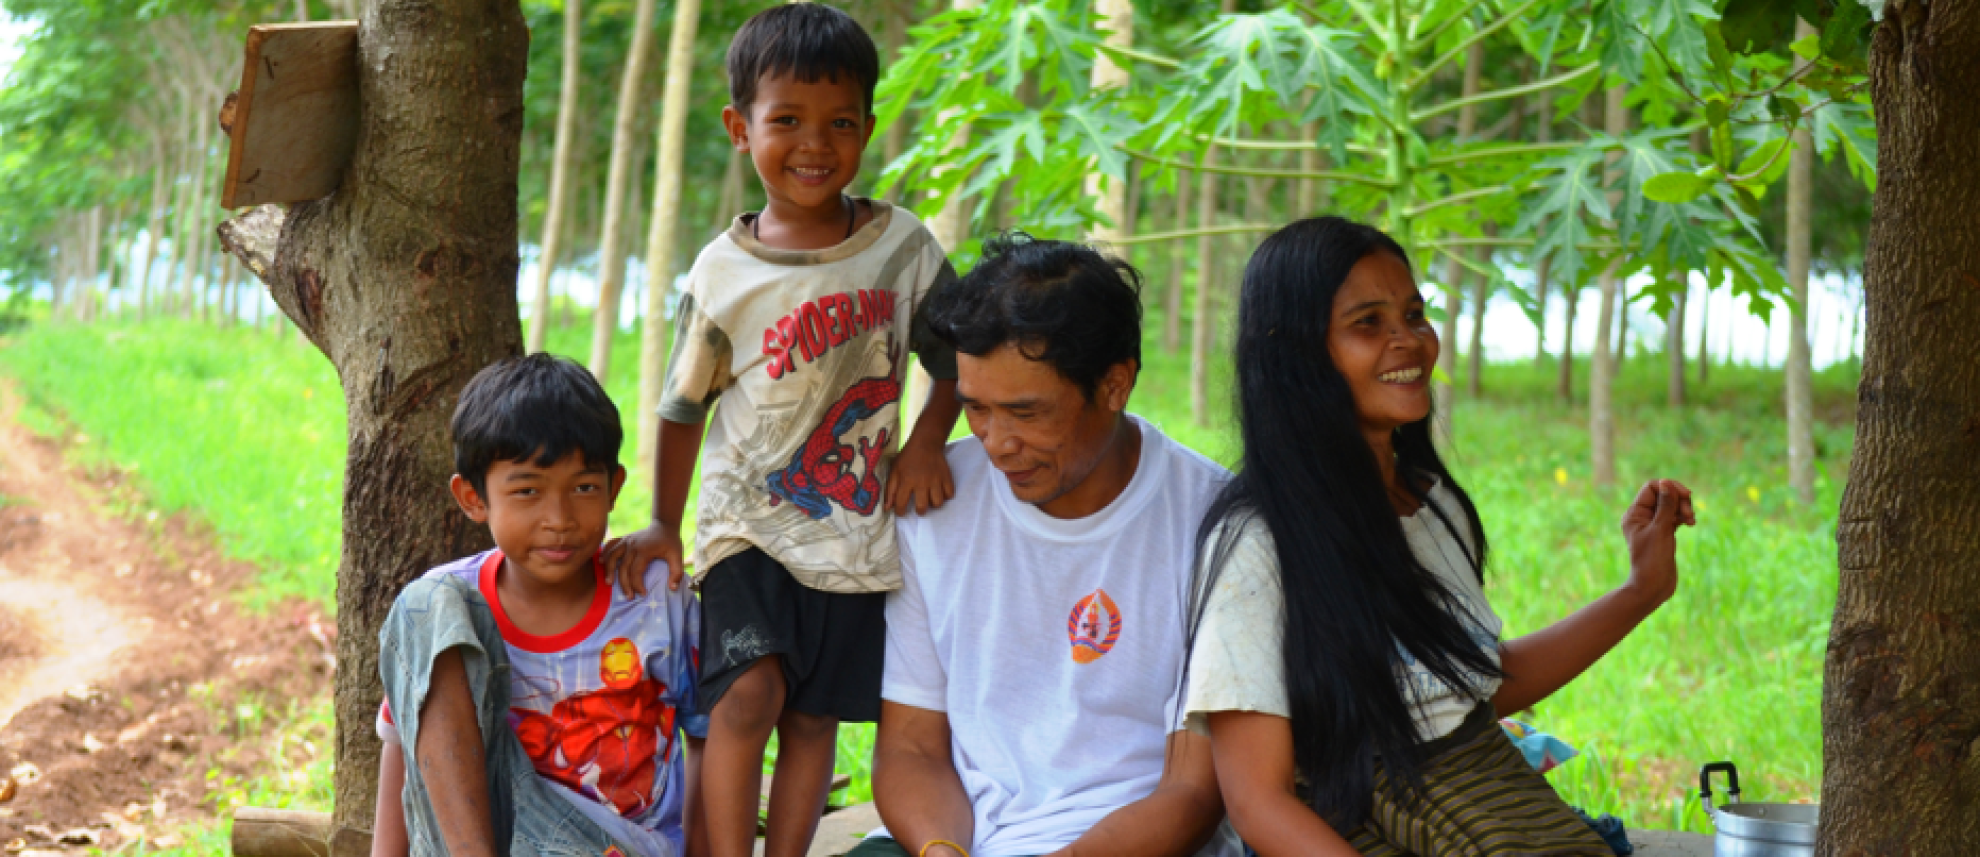 Latest News Andlsquo one healthandrsquo project fights antibiotic resistance in cambodia on different fronts